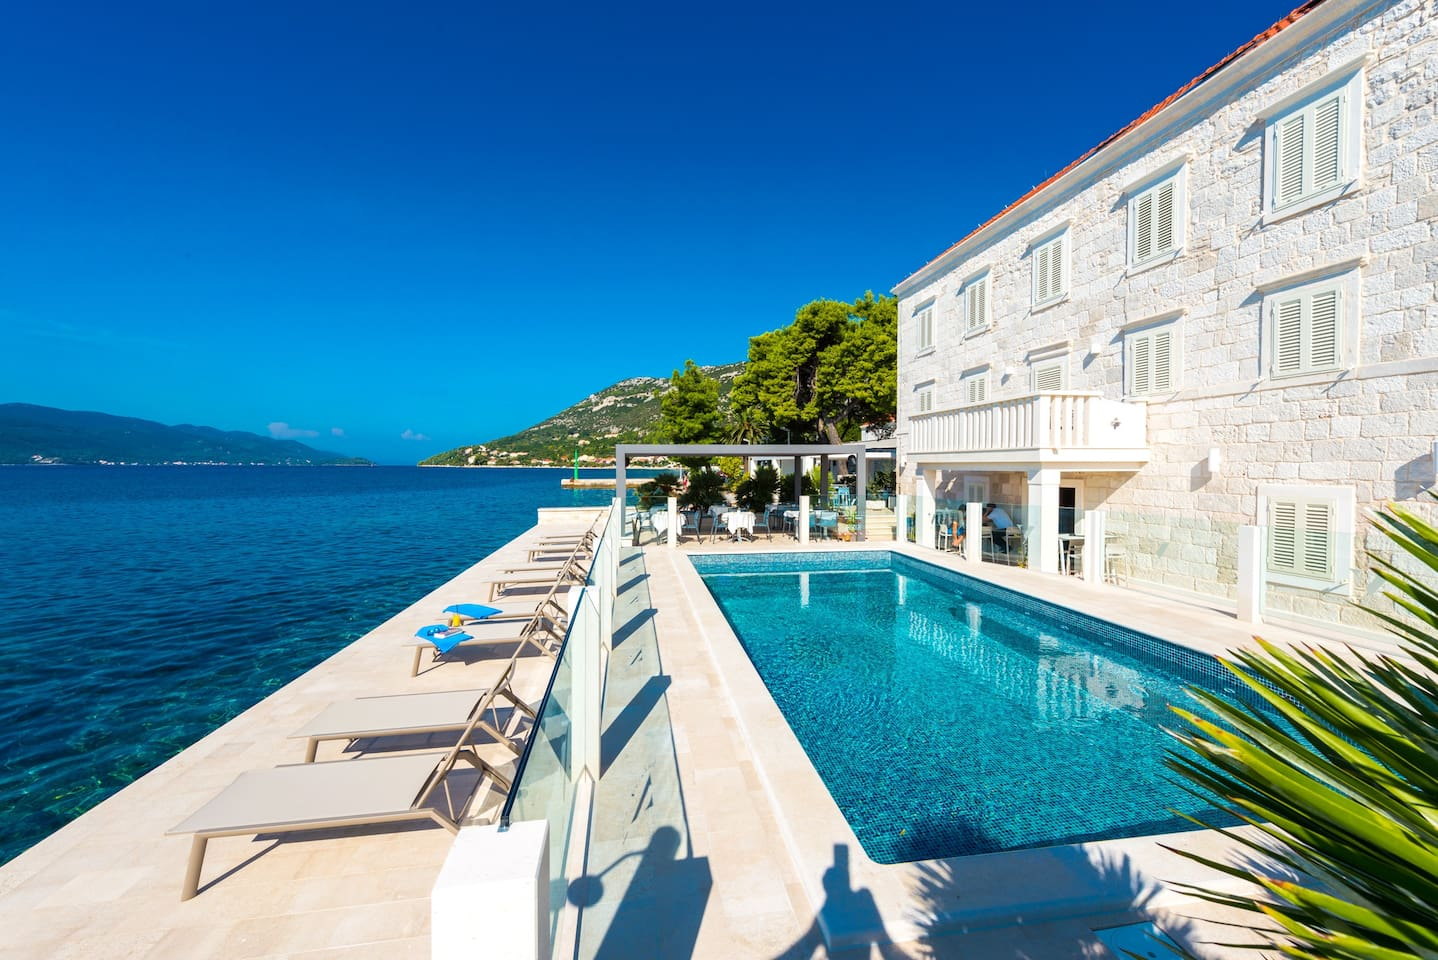 Wonderful Heritage Boutique Hotel by the sea